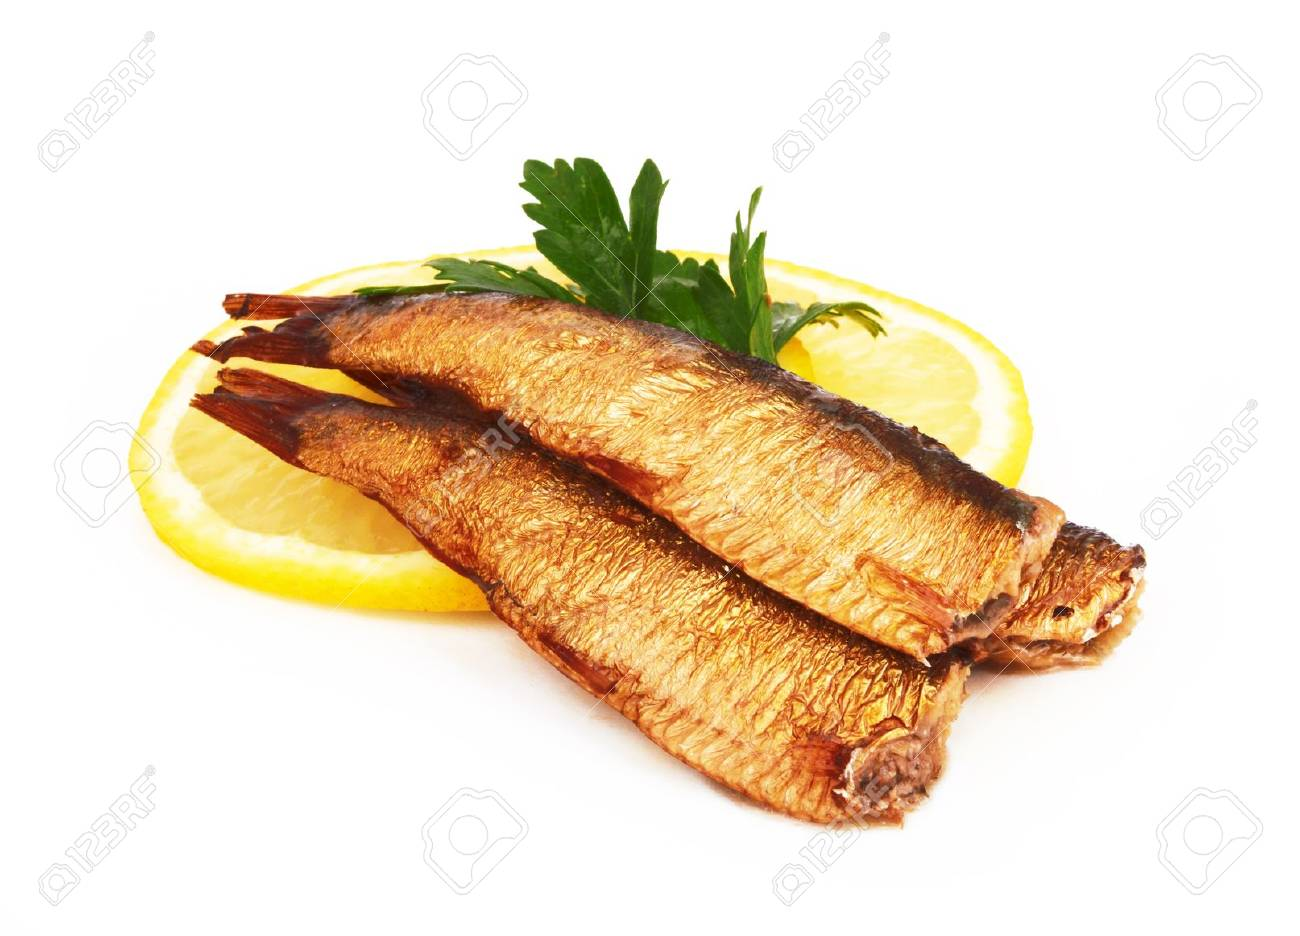 Smoked sprats in oil on white background Stock Photo - 16052129